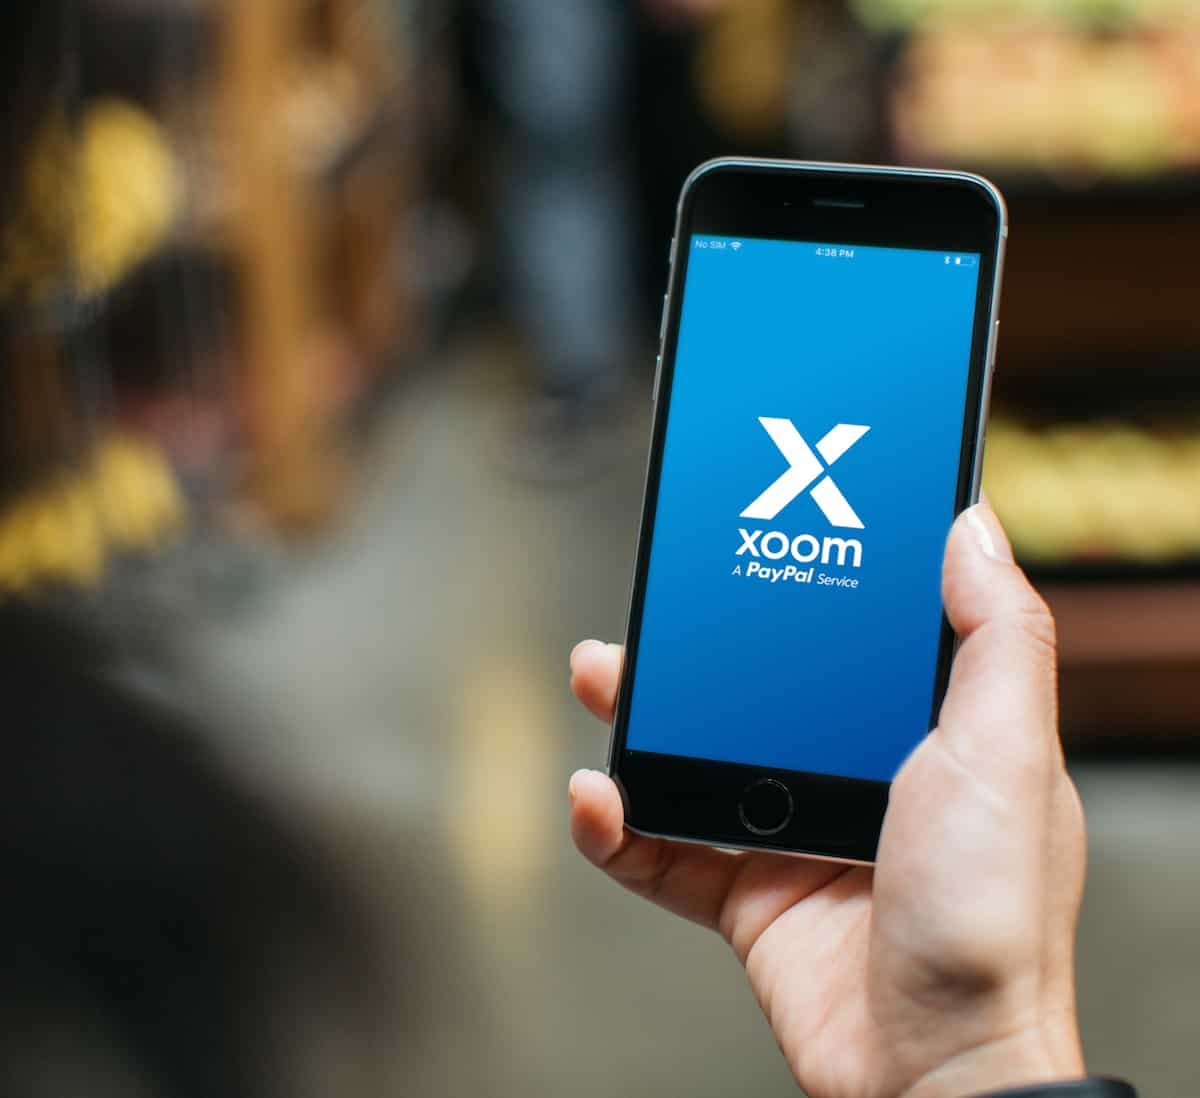 PayPal's Xoom Announces Rollout of Domestic Money Transfer Service in the U.S.